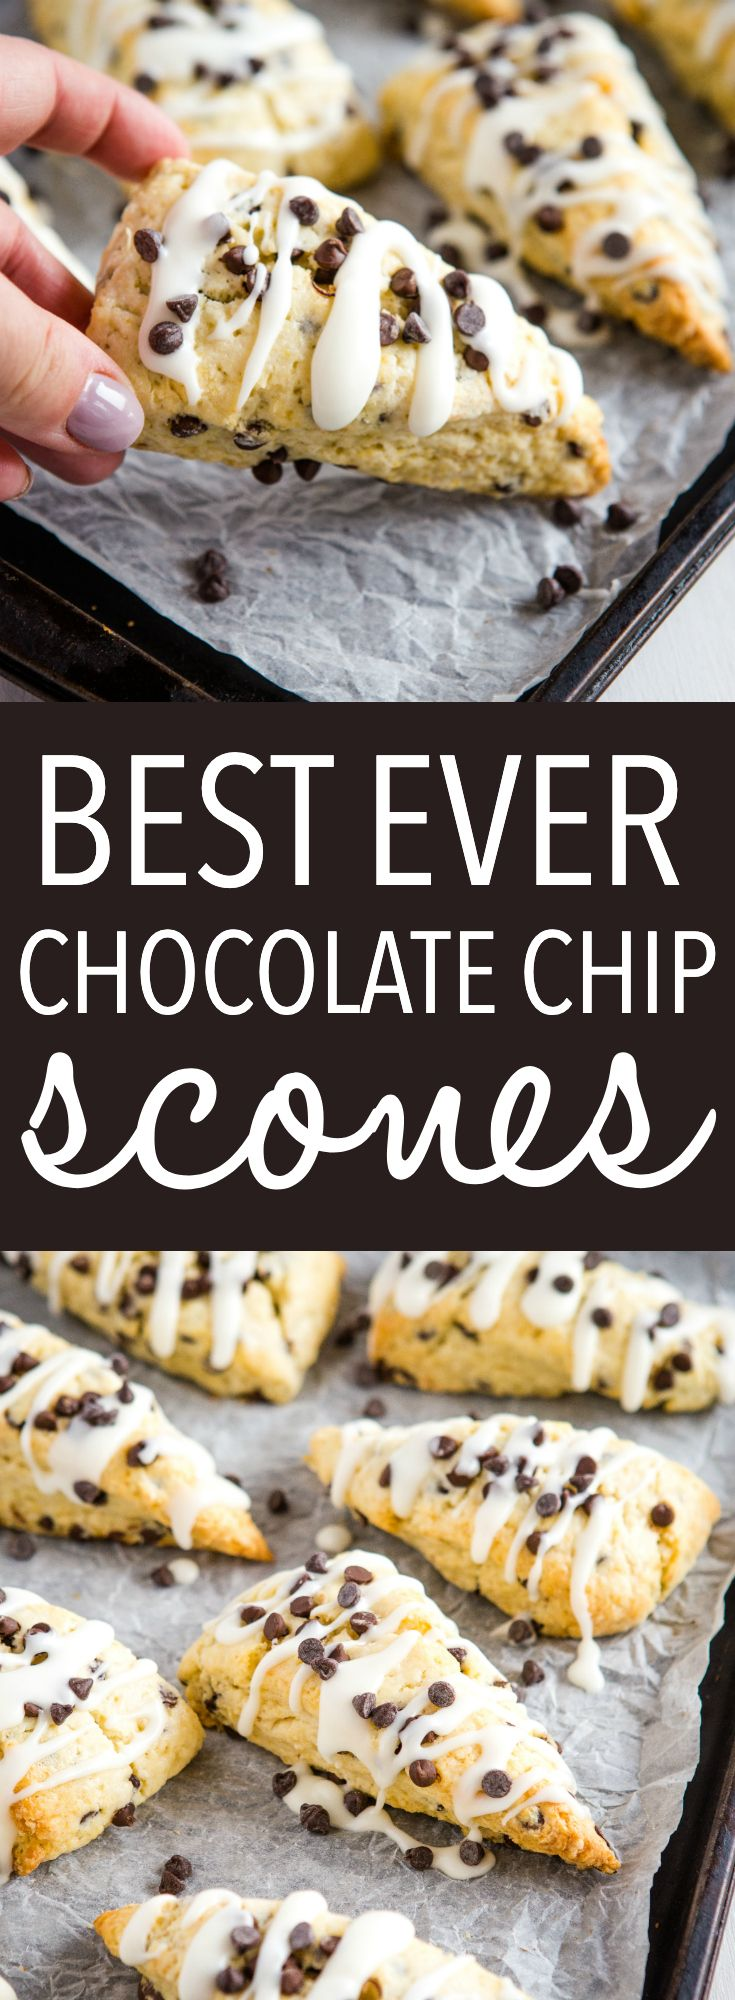 These Best Ever Chocolate Chip Scones are the perfect snack or dessert to enjoy with coffee or tea, and they're SO easy to make for beginning bakers! Packed with mini chocolate chips and topped with a simple sweet glaze! Recipe from thebusybaker.ca! #scones #chocolatechip #baking #easyrecipe #british #tea #snack #biscuits